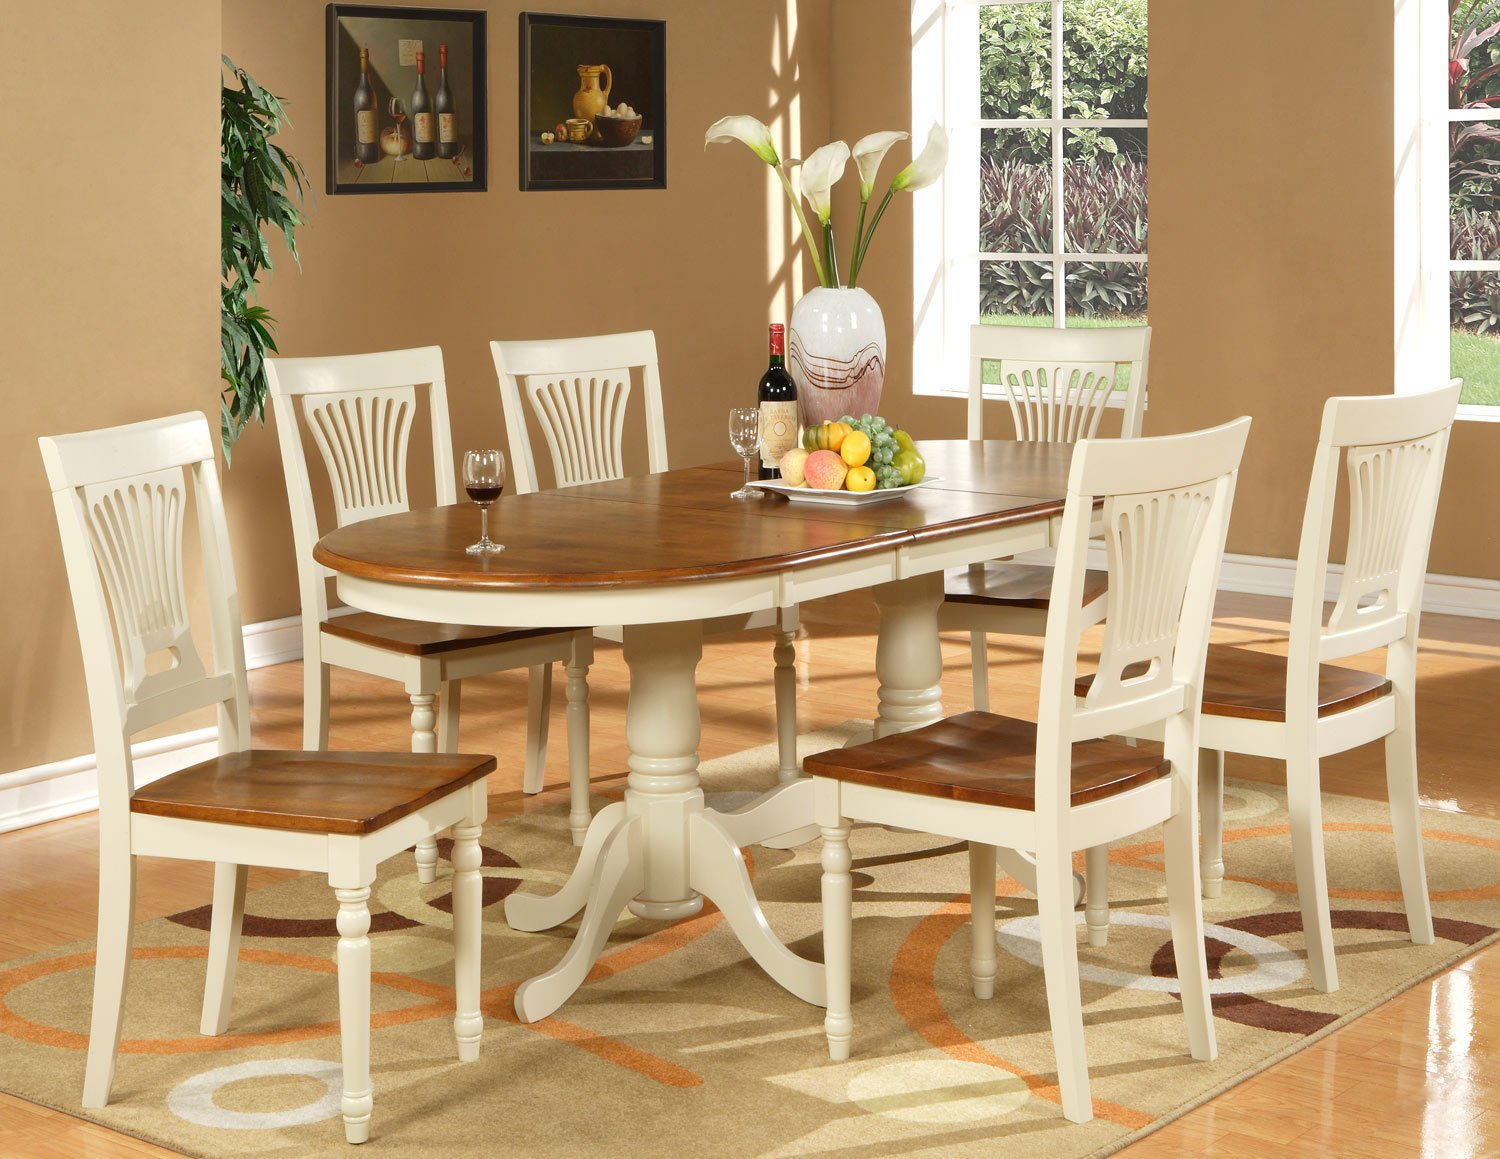 "9-PC Plainfield Oval Dining Room Table Set + 8 Chairs - Size: 42""x78"" in Butter milk. SKU: PL9-WHI"